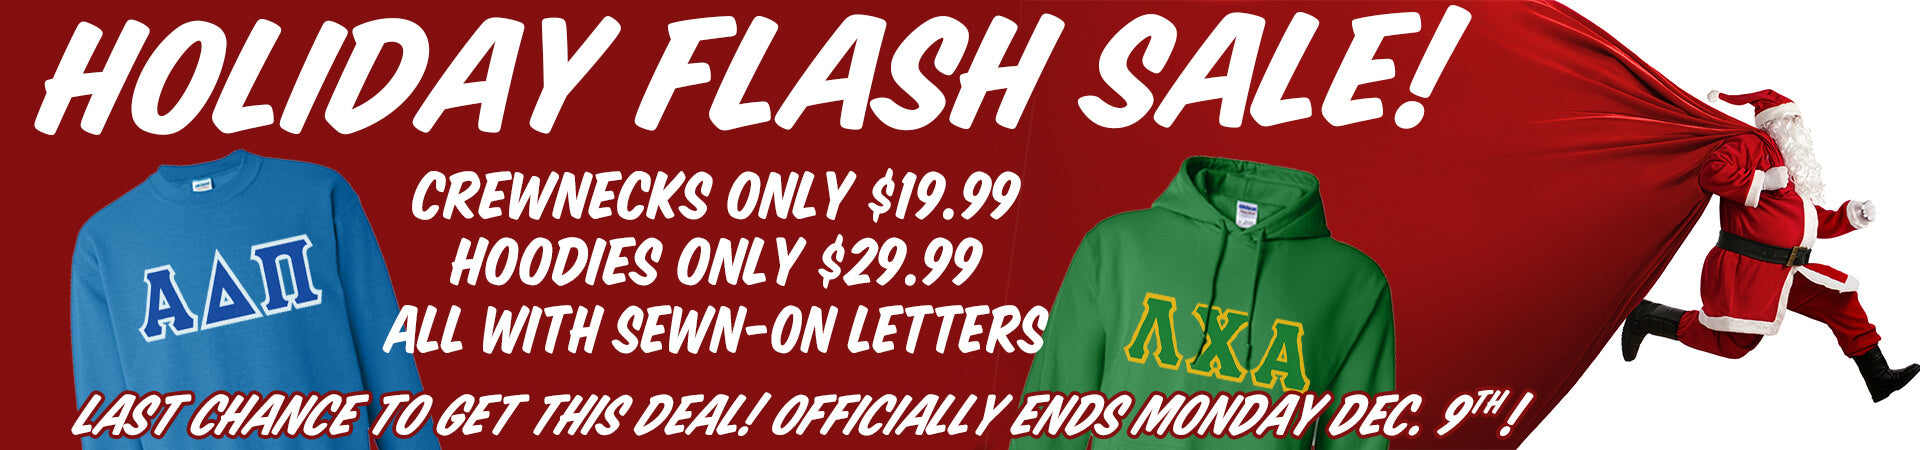 Crewnecks Only $19.99; Hoodies Only $29.99; All with Sewn-on Letters; Last Chance to Get this Deal! Officially Ends on Monday, December 9, 2019!